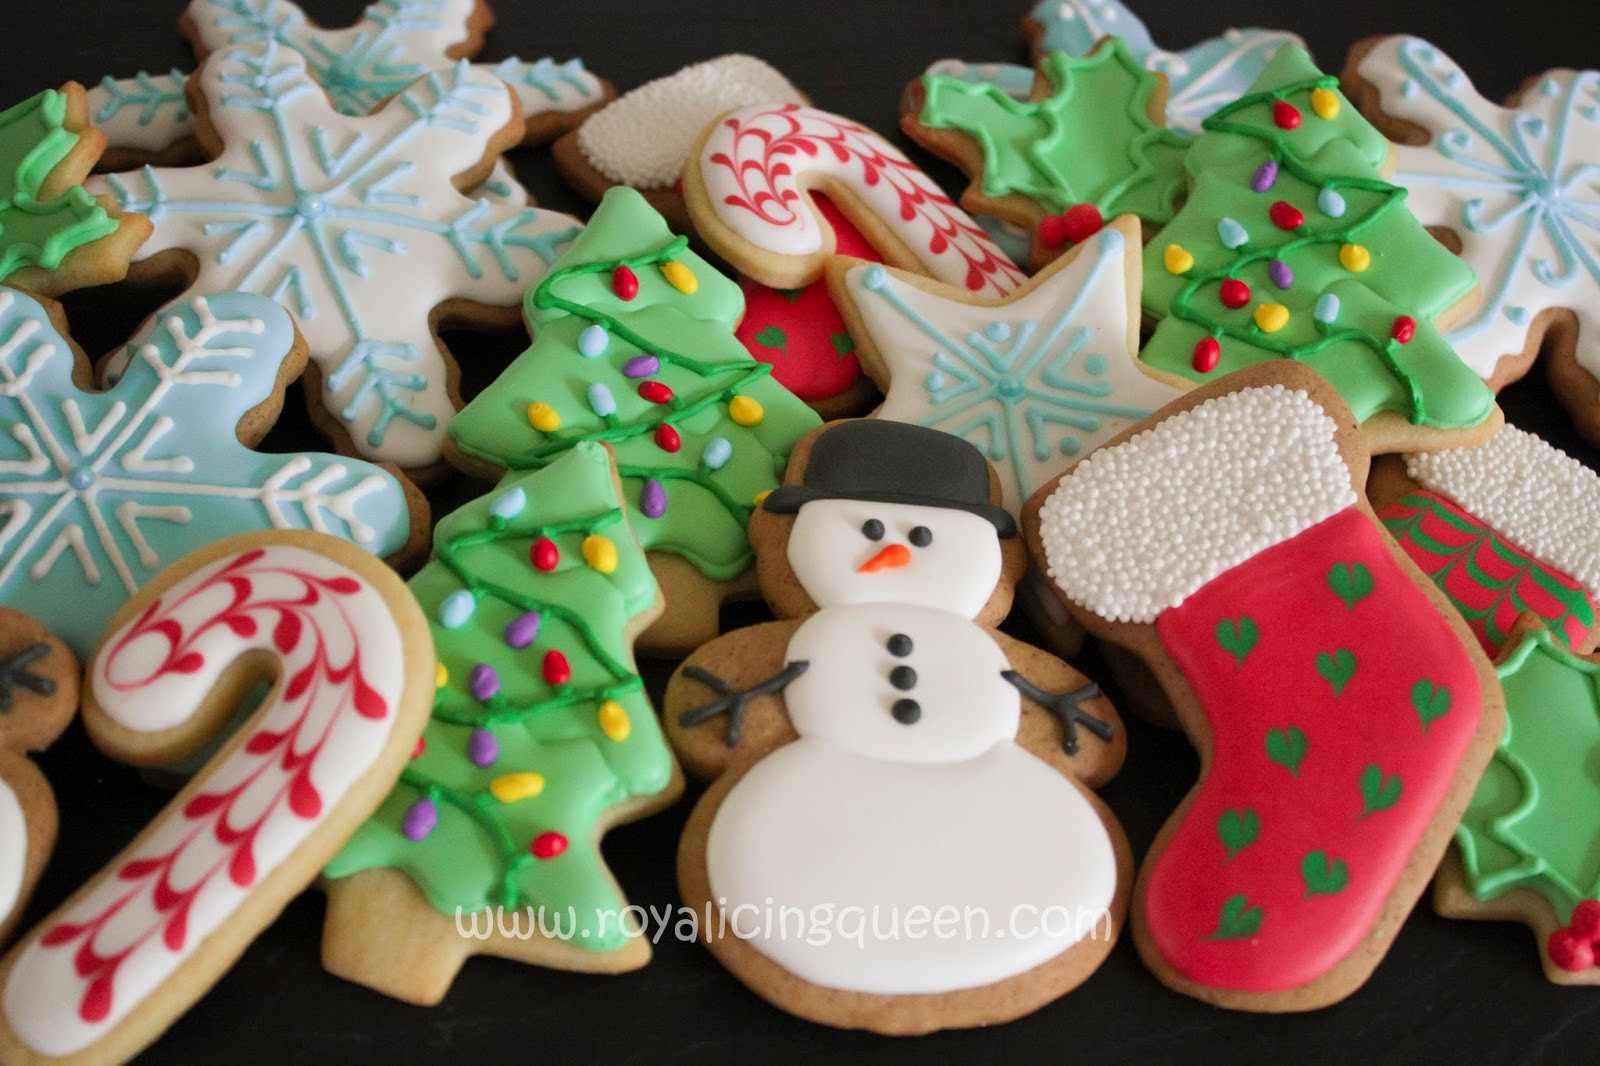 Assorted Christmas Cookies  The Royal Icing Queen More Assorted Christmas Cookies